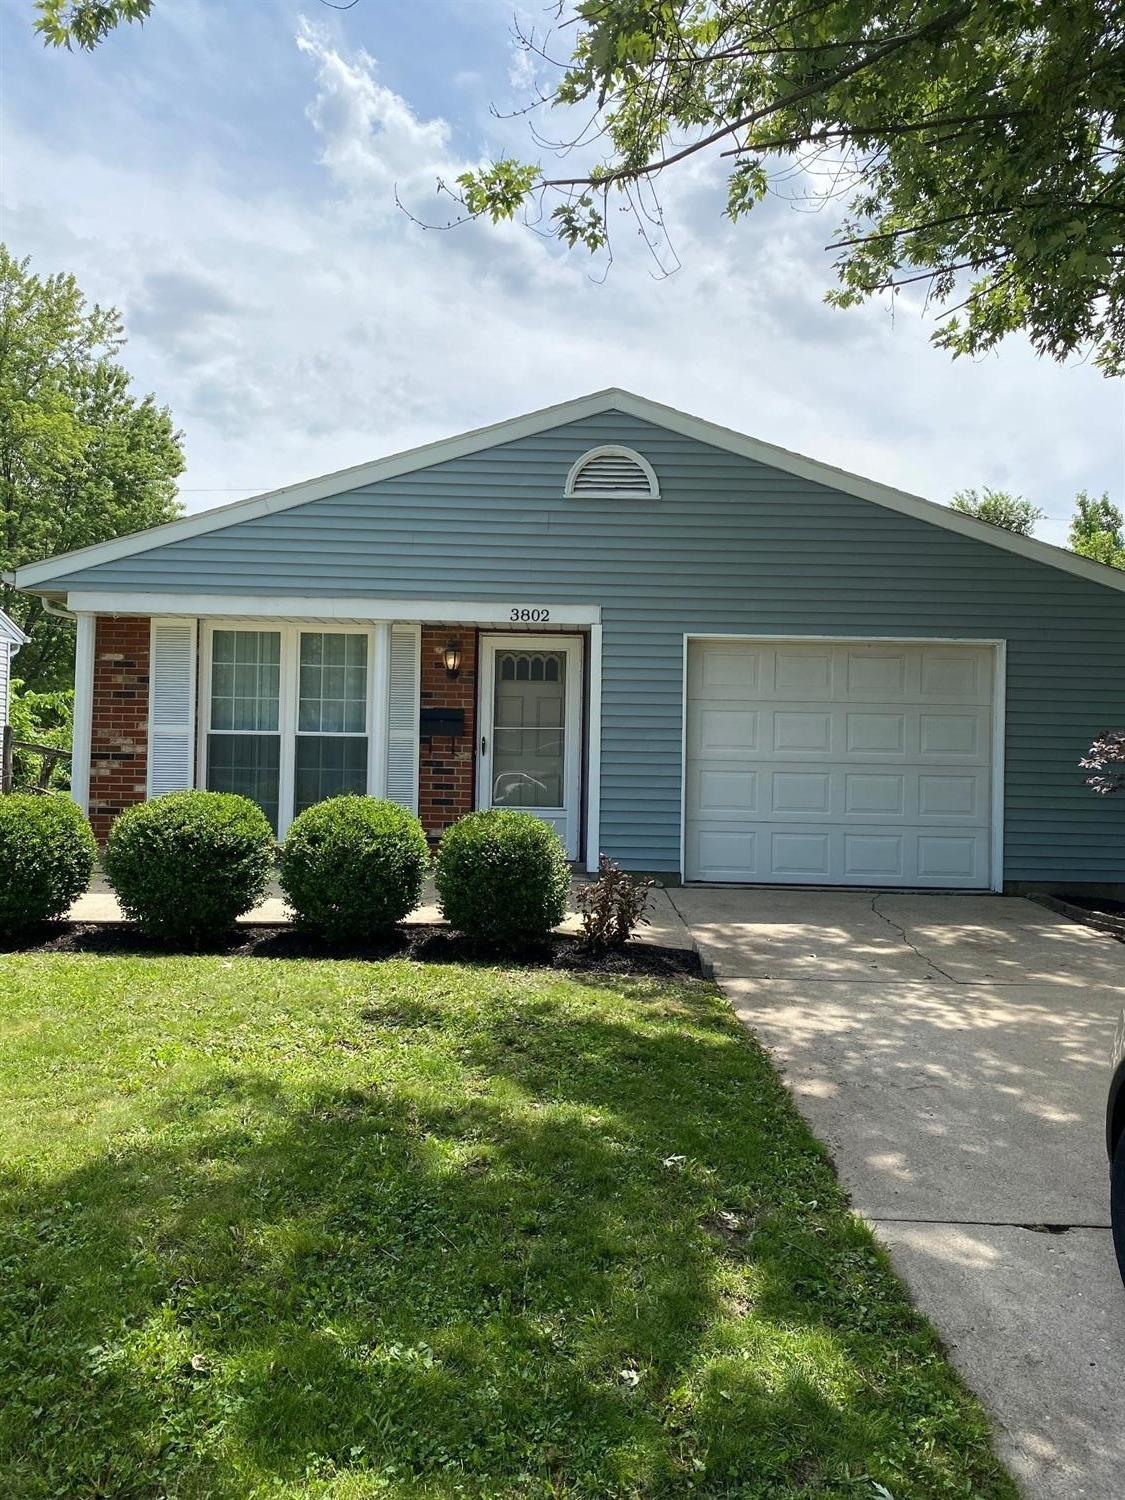 3802 Burbank Ave Middletown South, OH